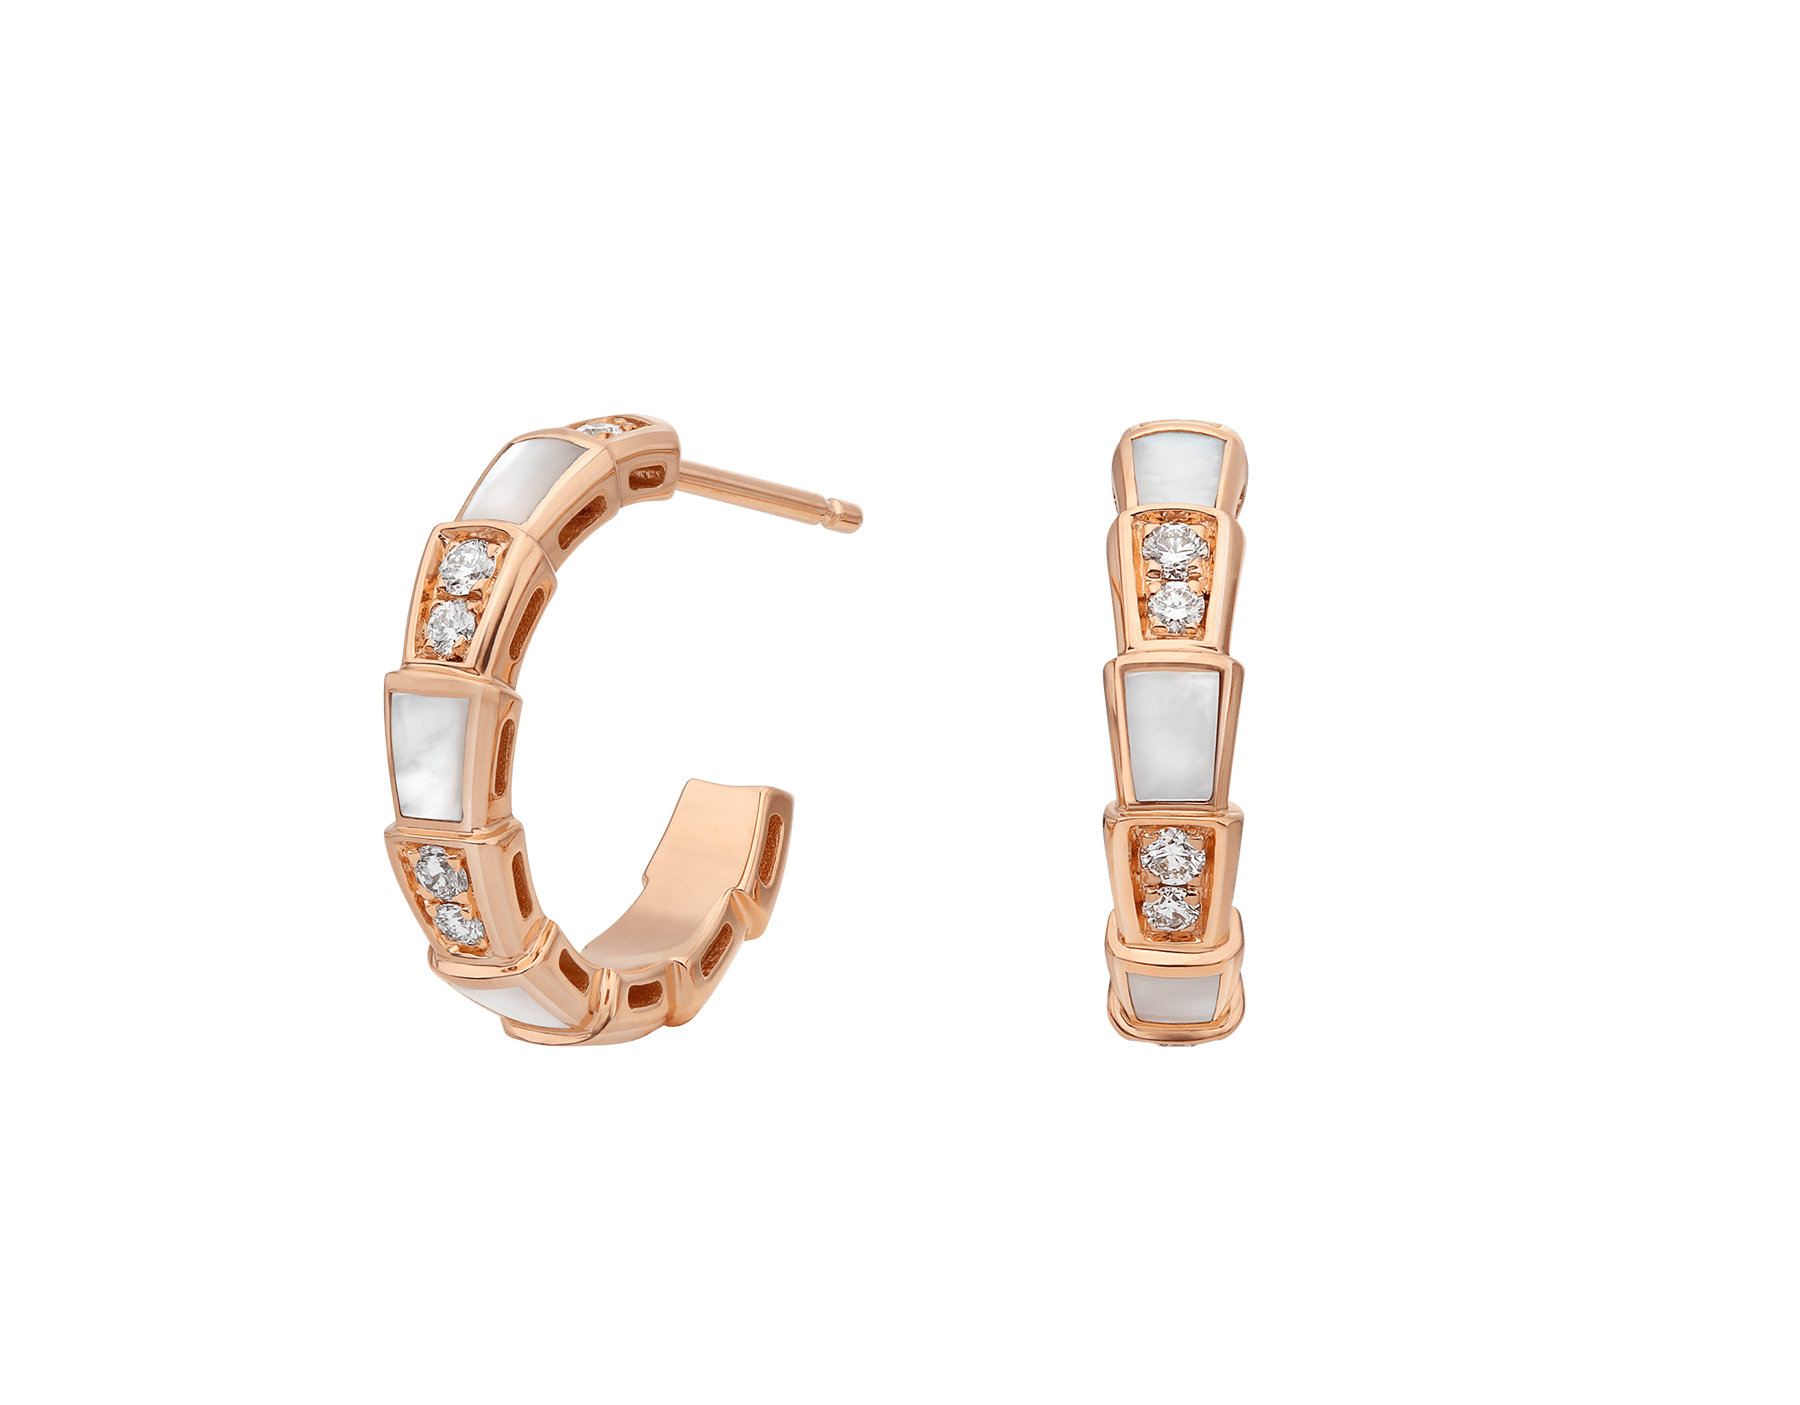 Serpenti Viper 18 kt rose gold earrings set with mother-of-pearl elements and pavé diamonds (0.31 ct) 356170 image 1